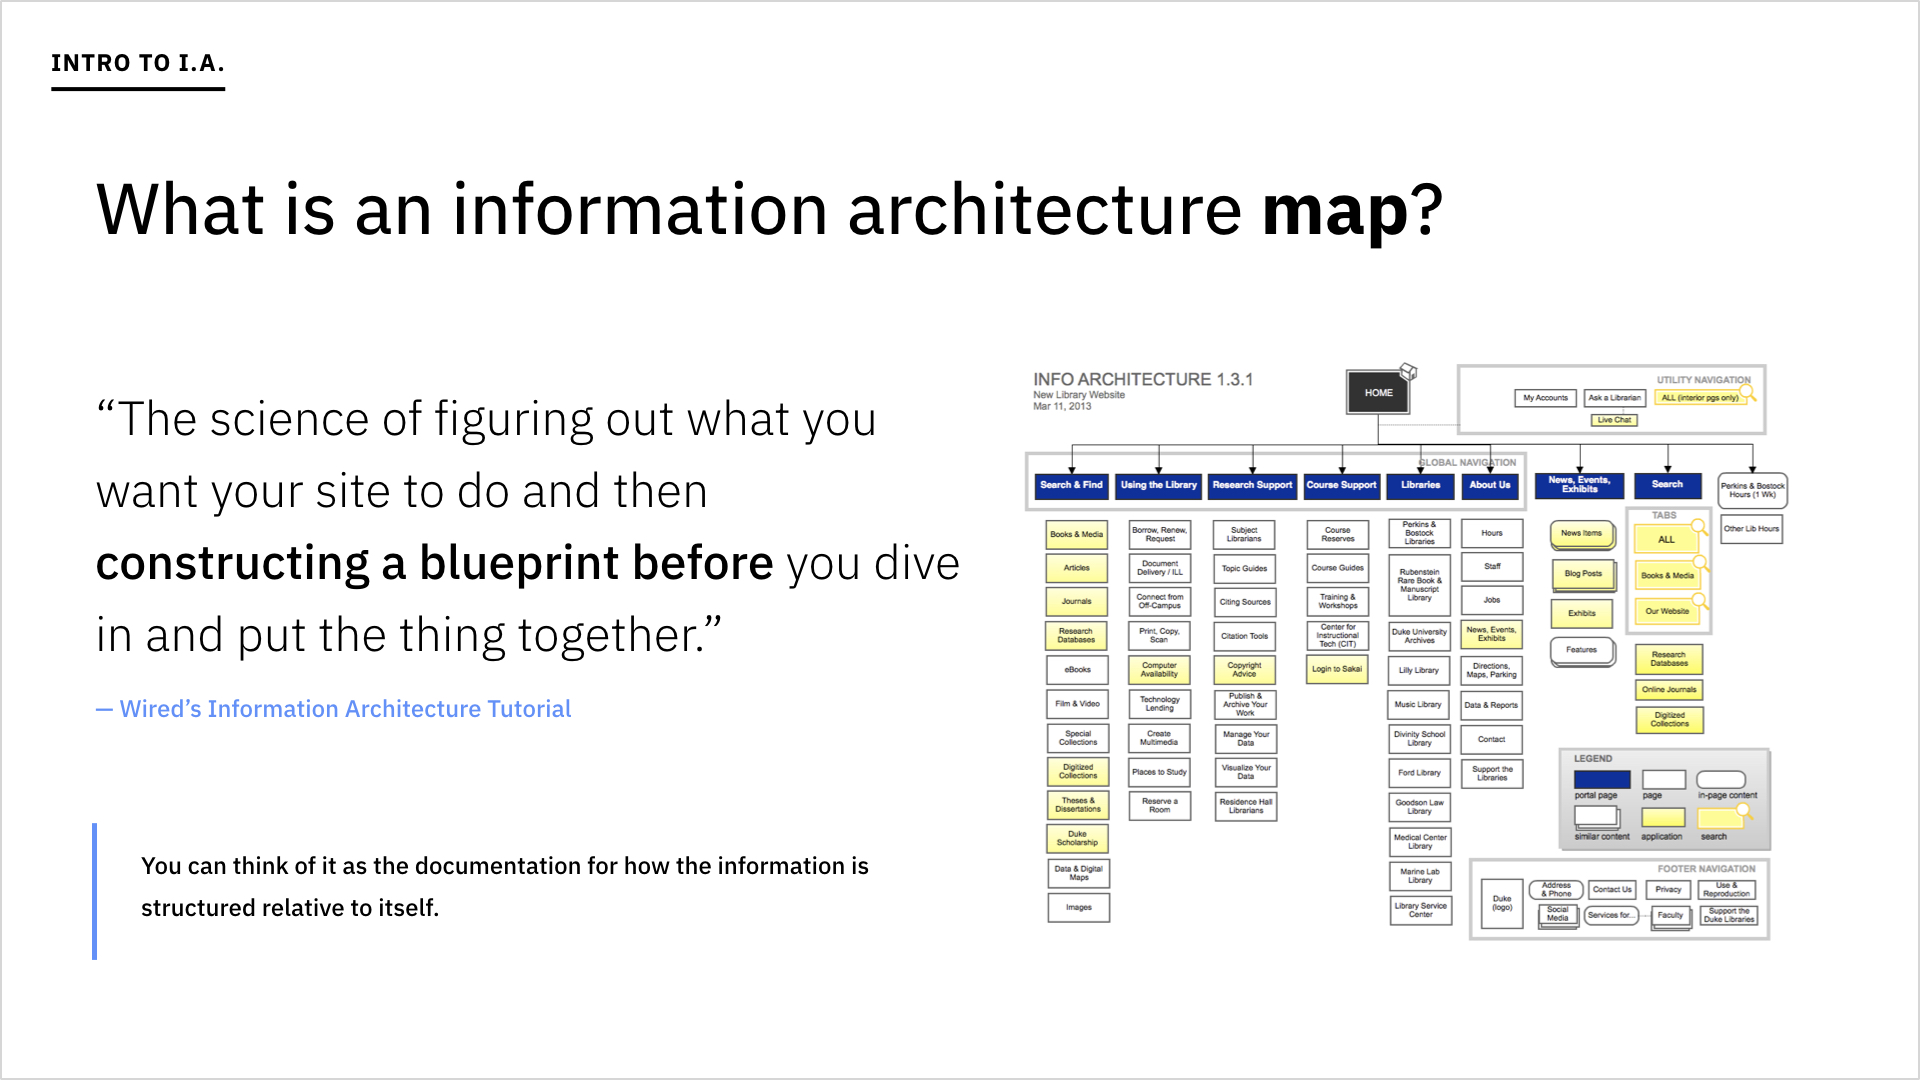 A slide asking what an information architecture map is.